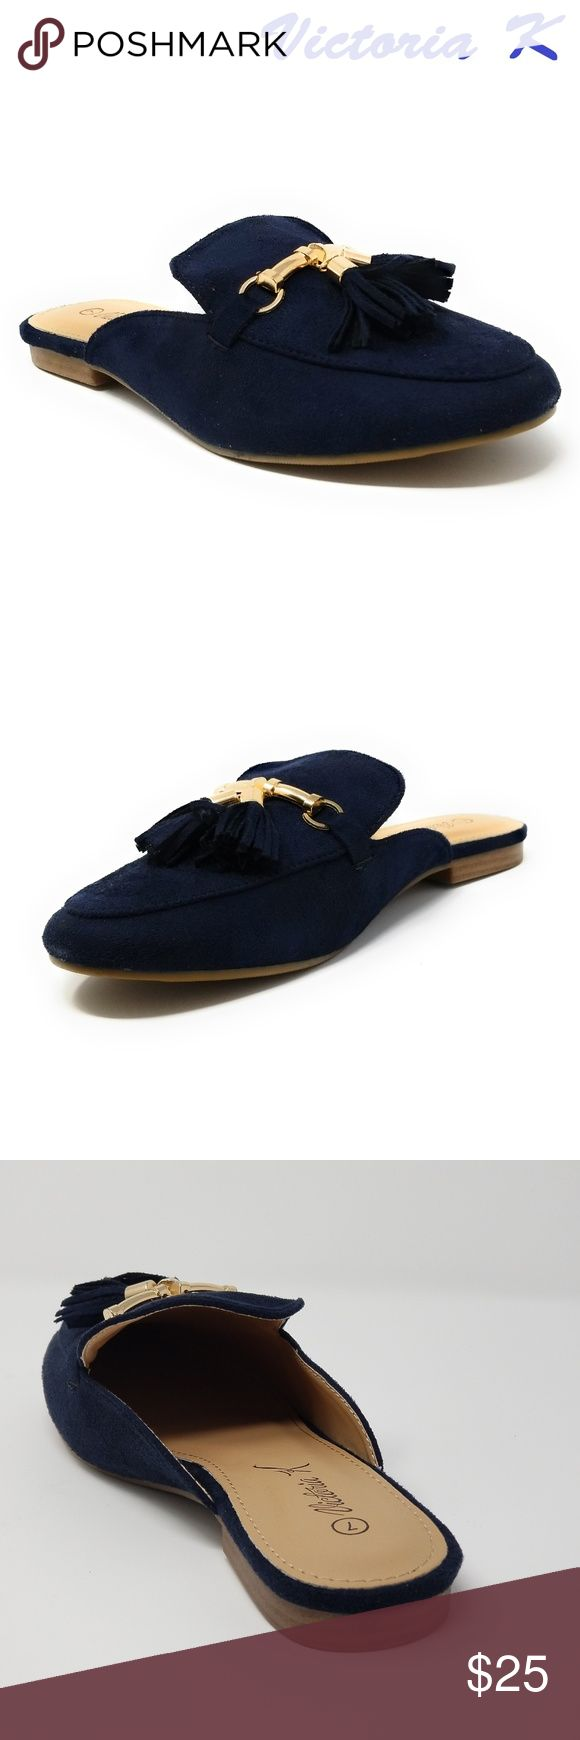 Women Suede Mules with Tassels, HK-7081, Navy Slip on a pair of gorgeous brand new suede flat slippers that make you a fashionable woman. Faux-leather upper. Rubberized outer sole for traction. Sizes 6 through 8 are true, but 9 and 10 run small by a half-size. A true statement in ladies shoes fashion! Victoria K Shoes Flats & Loafers